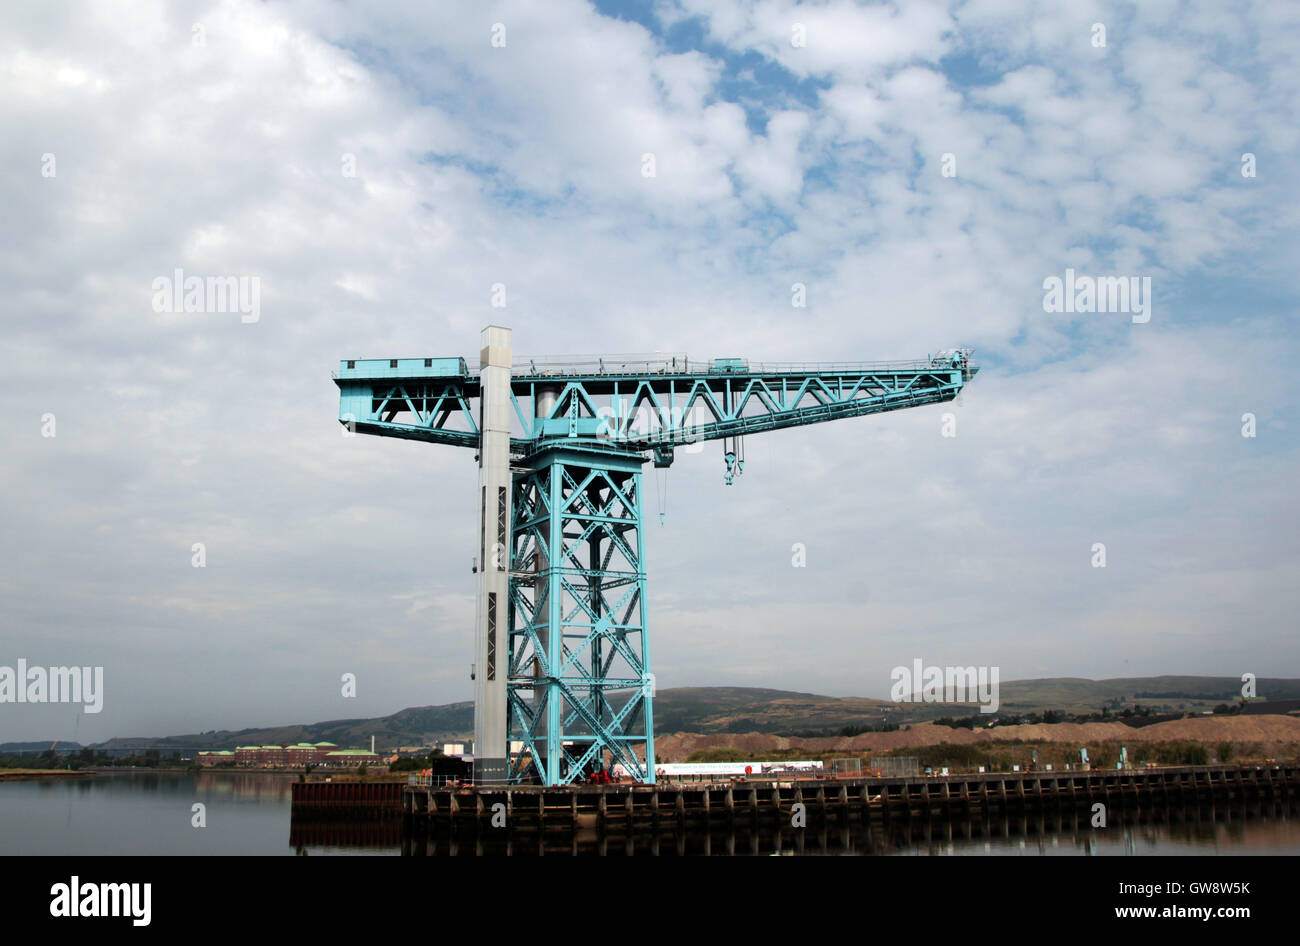 The Titan crane of the banks of the River Clyde at Clydebank, Scotland. - Stock Image